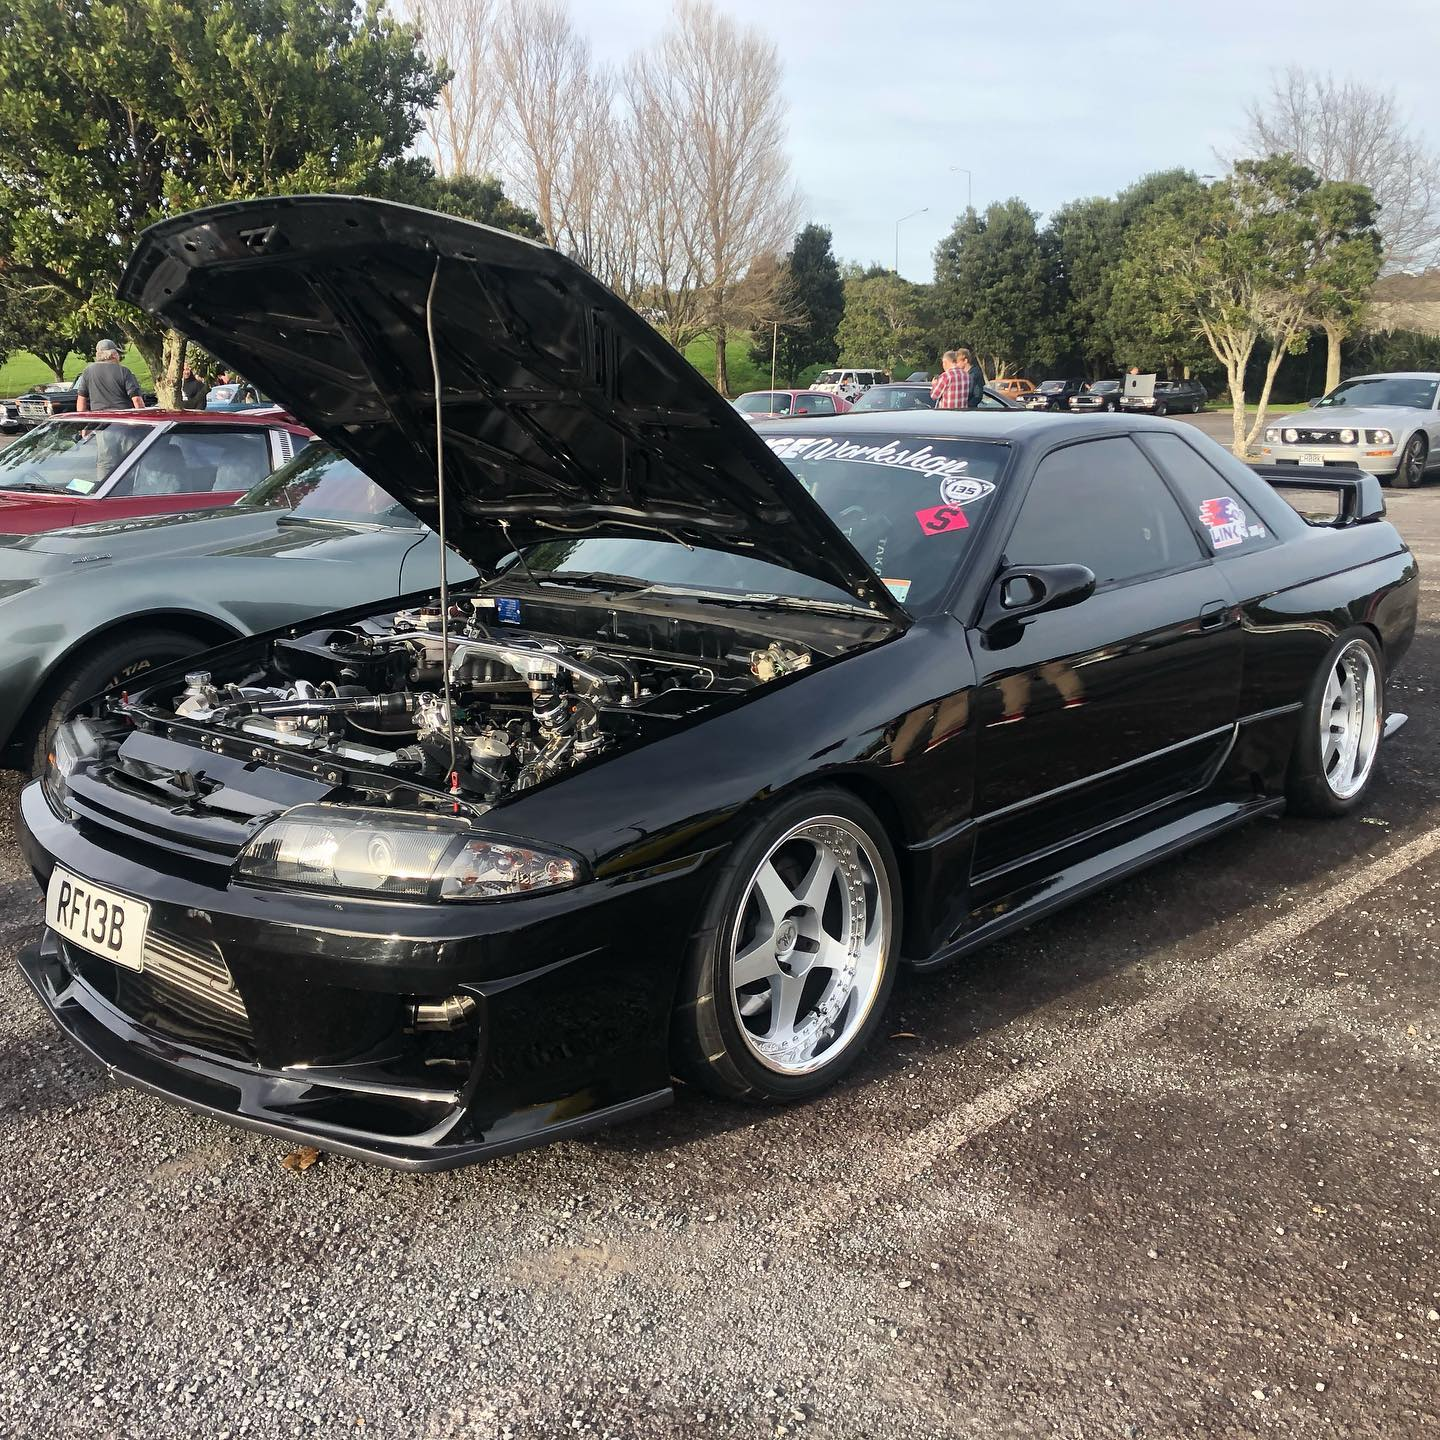 Nissan R32 Skyline with a turbo 13B two-rotor